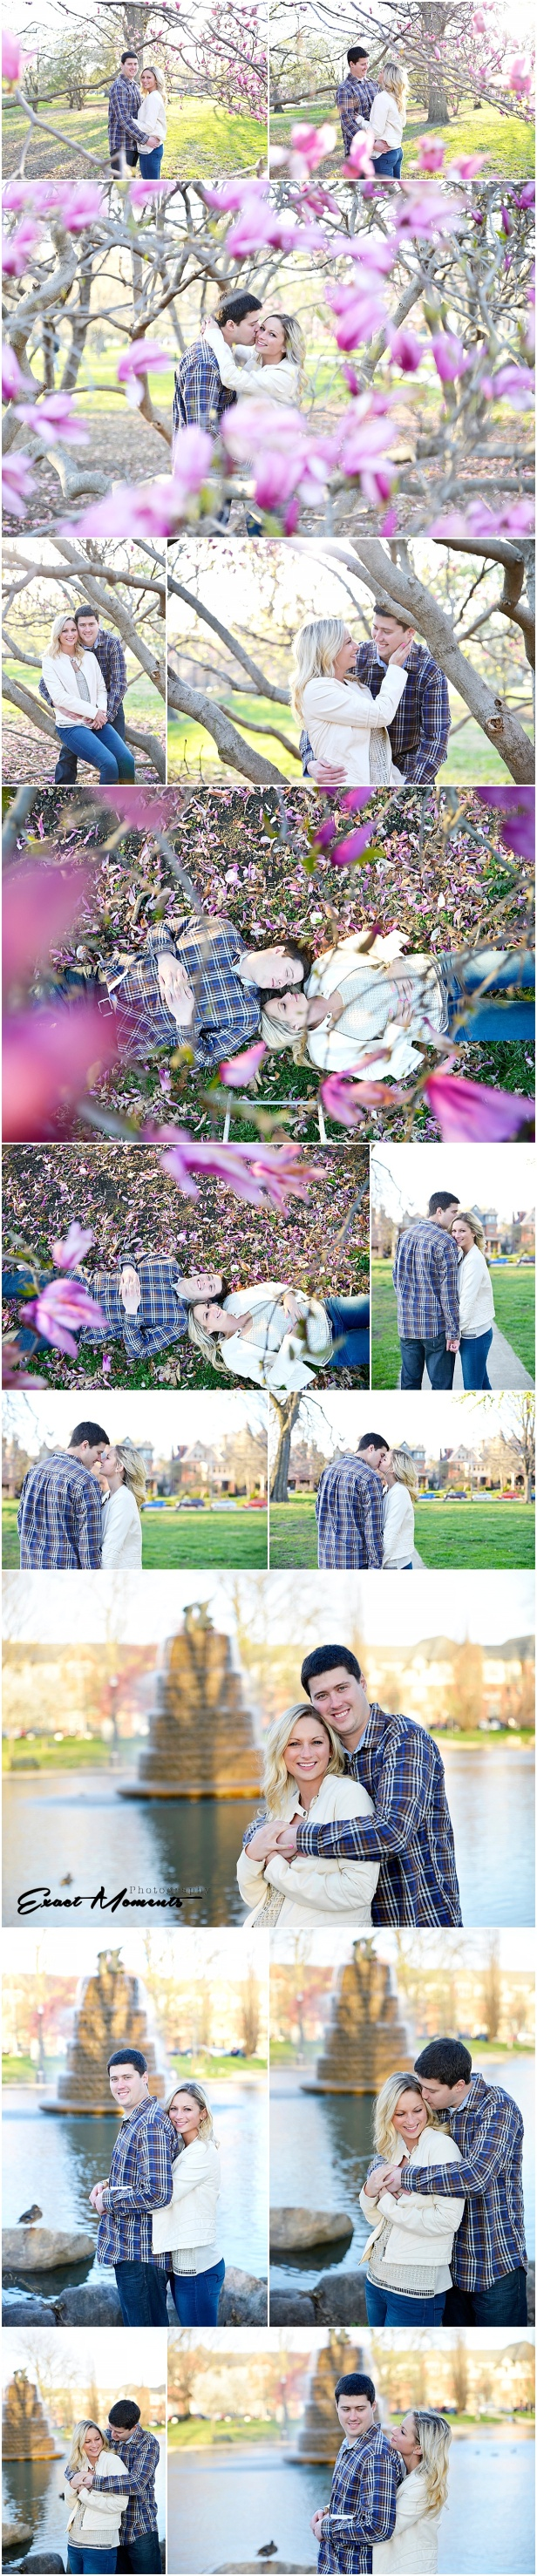 Goodale Park Engagement Session Columbus Ohio